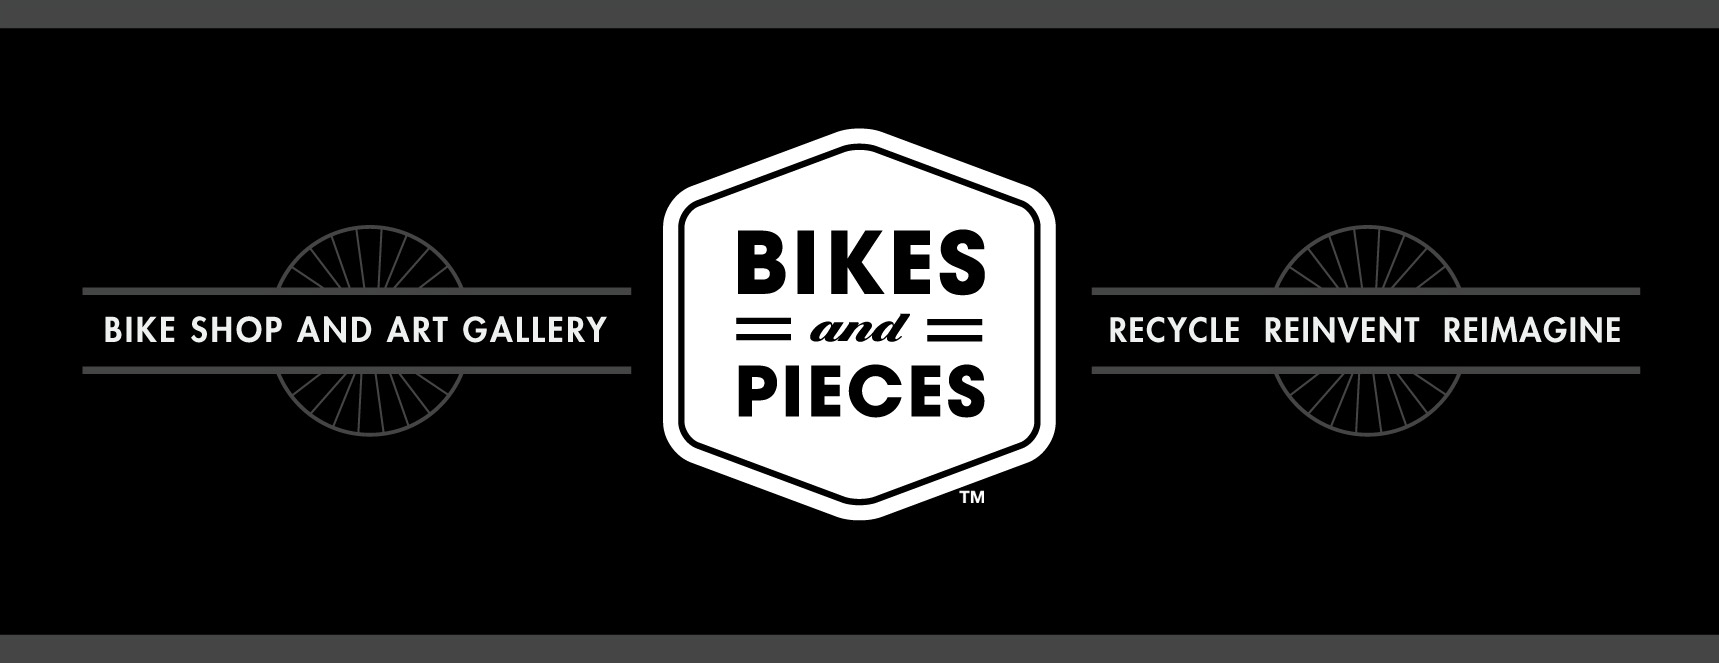 bikes and pieces shop logo and banner